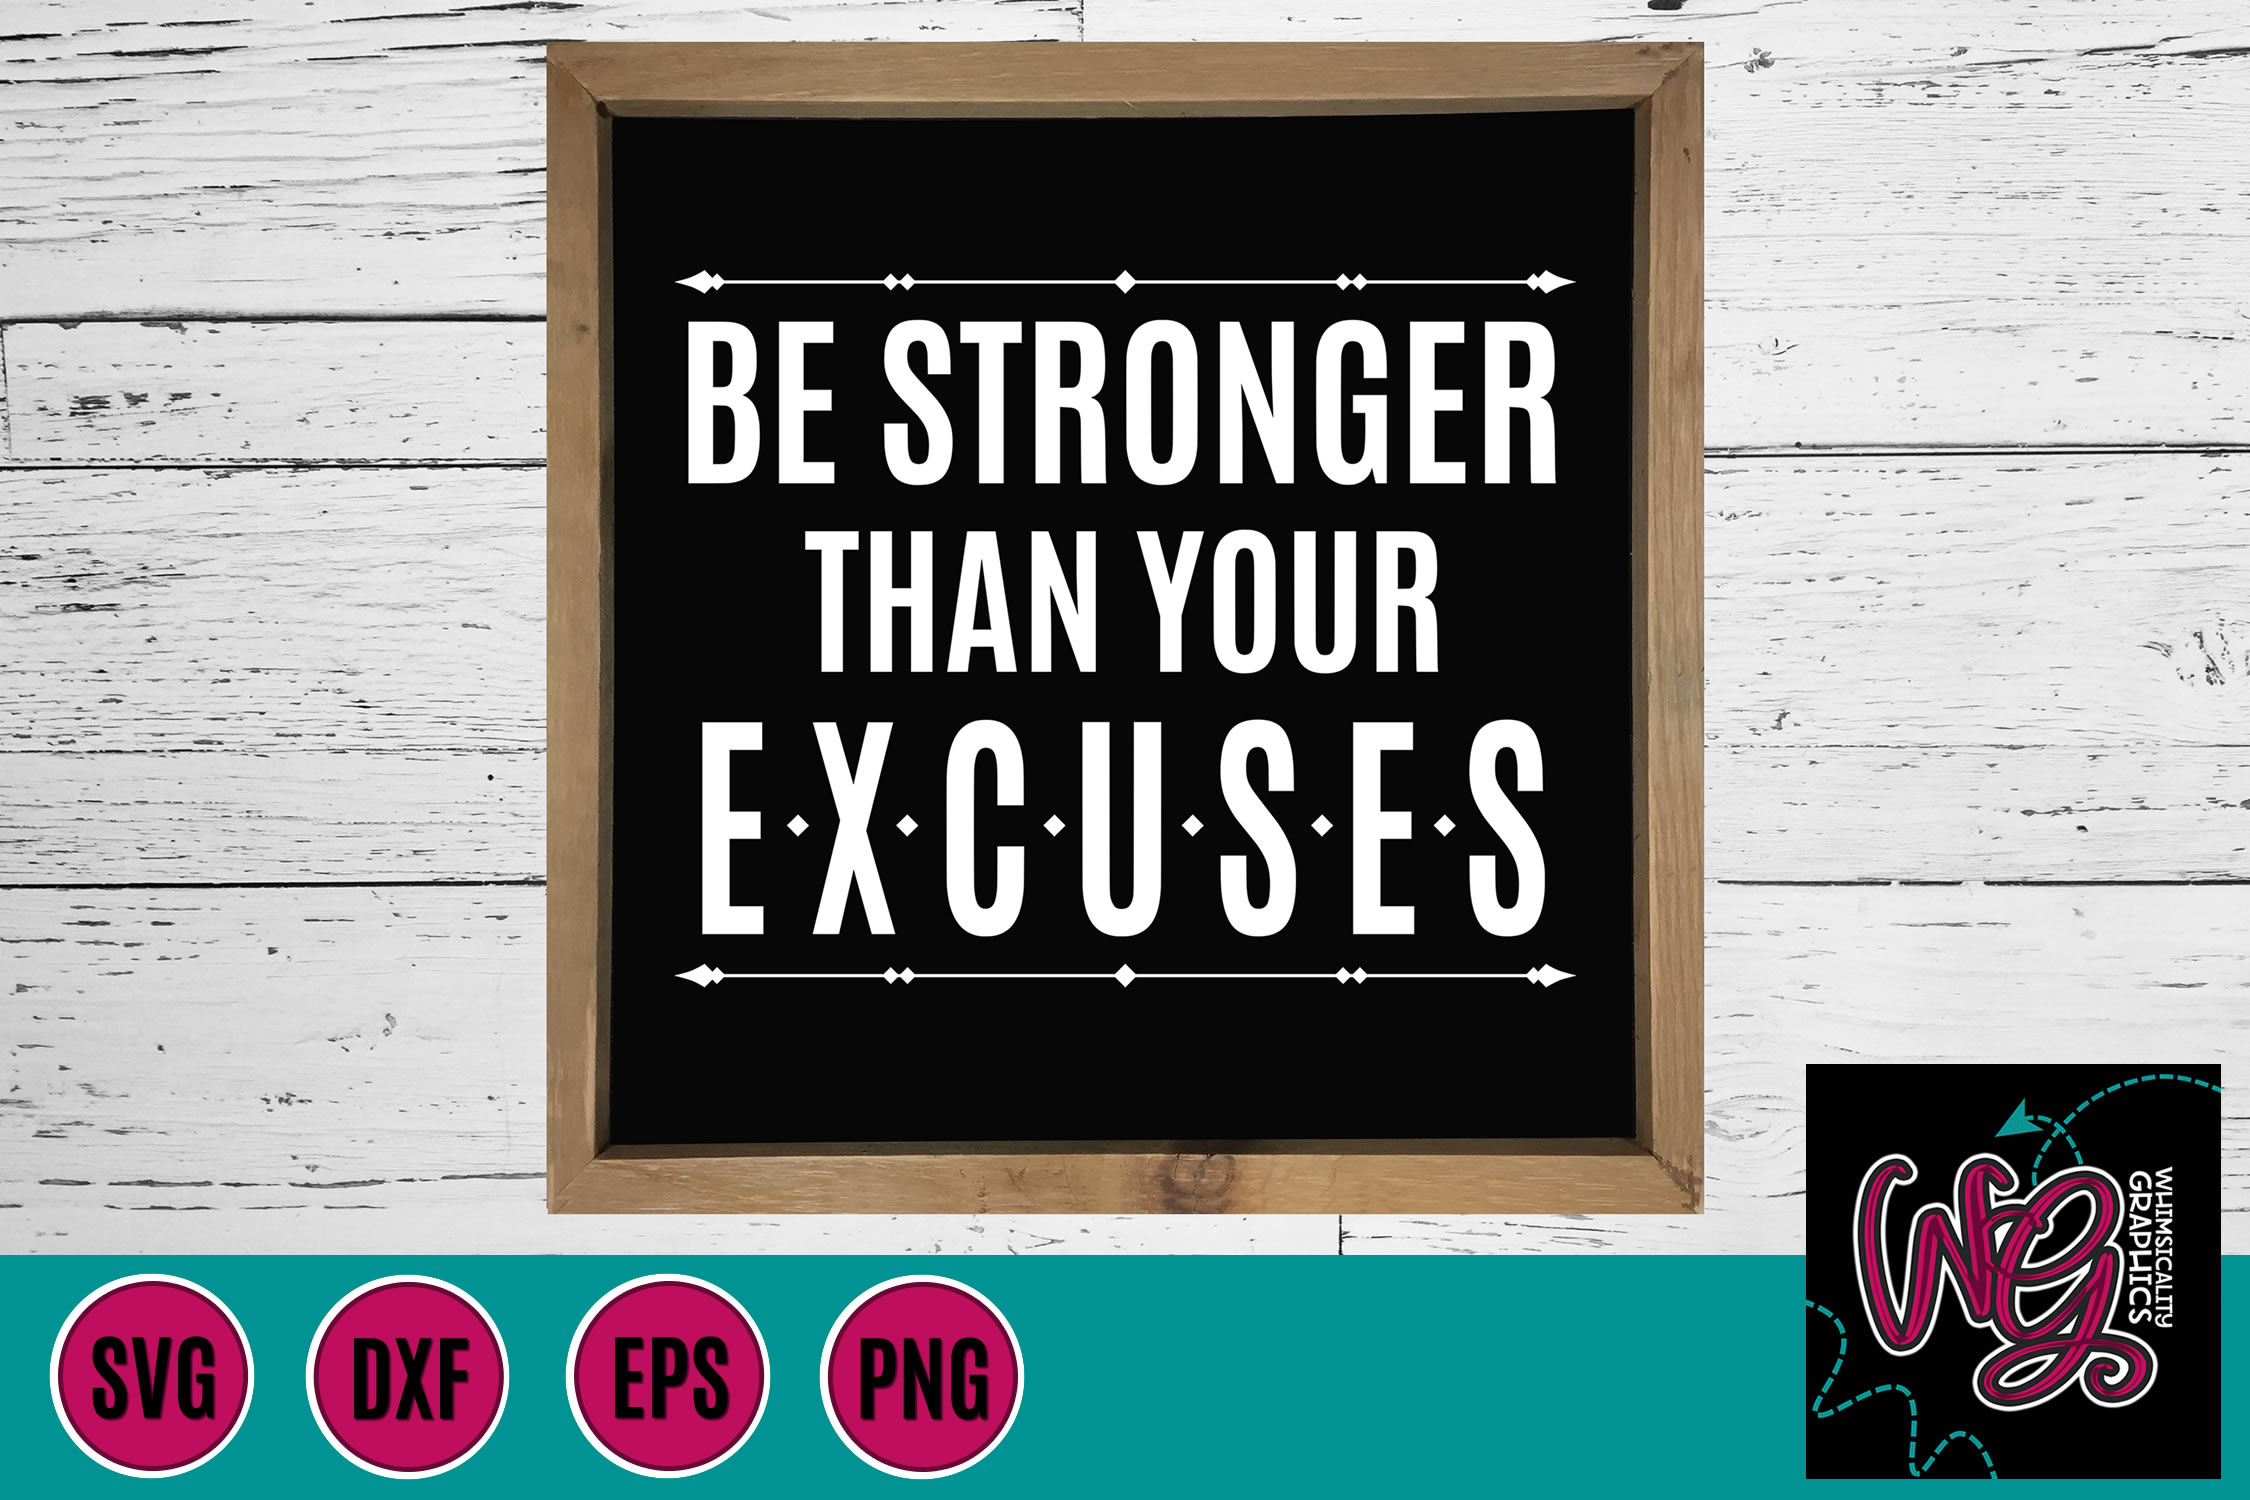 Be Stronger Than Your Excuses SVG, DXF, PNG, EPS example image 1